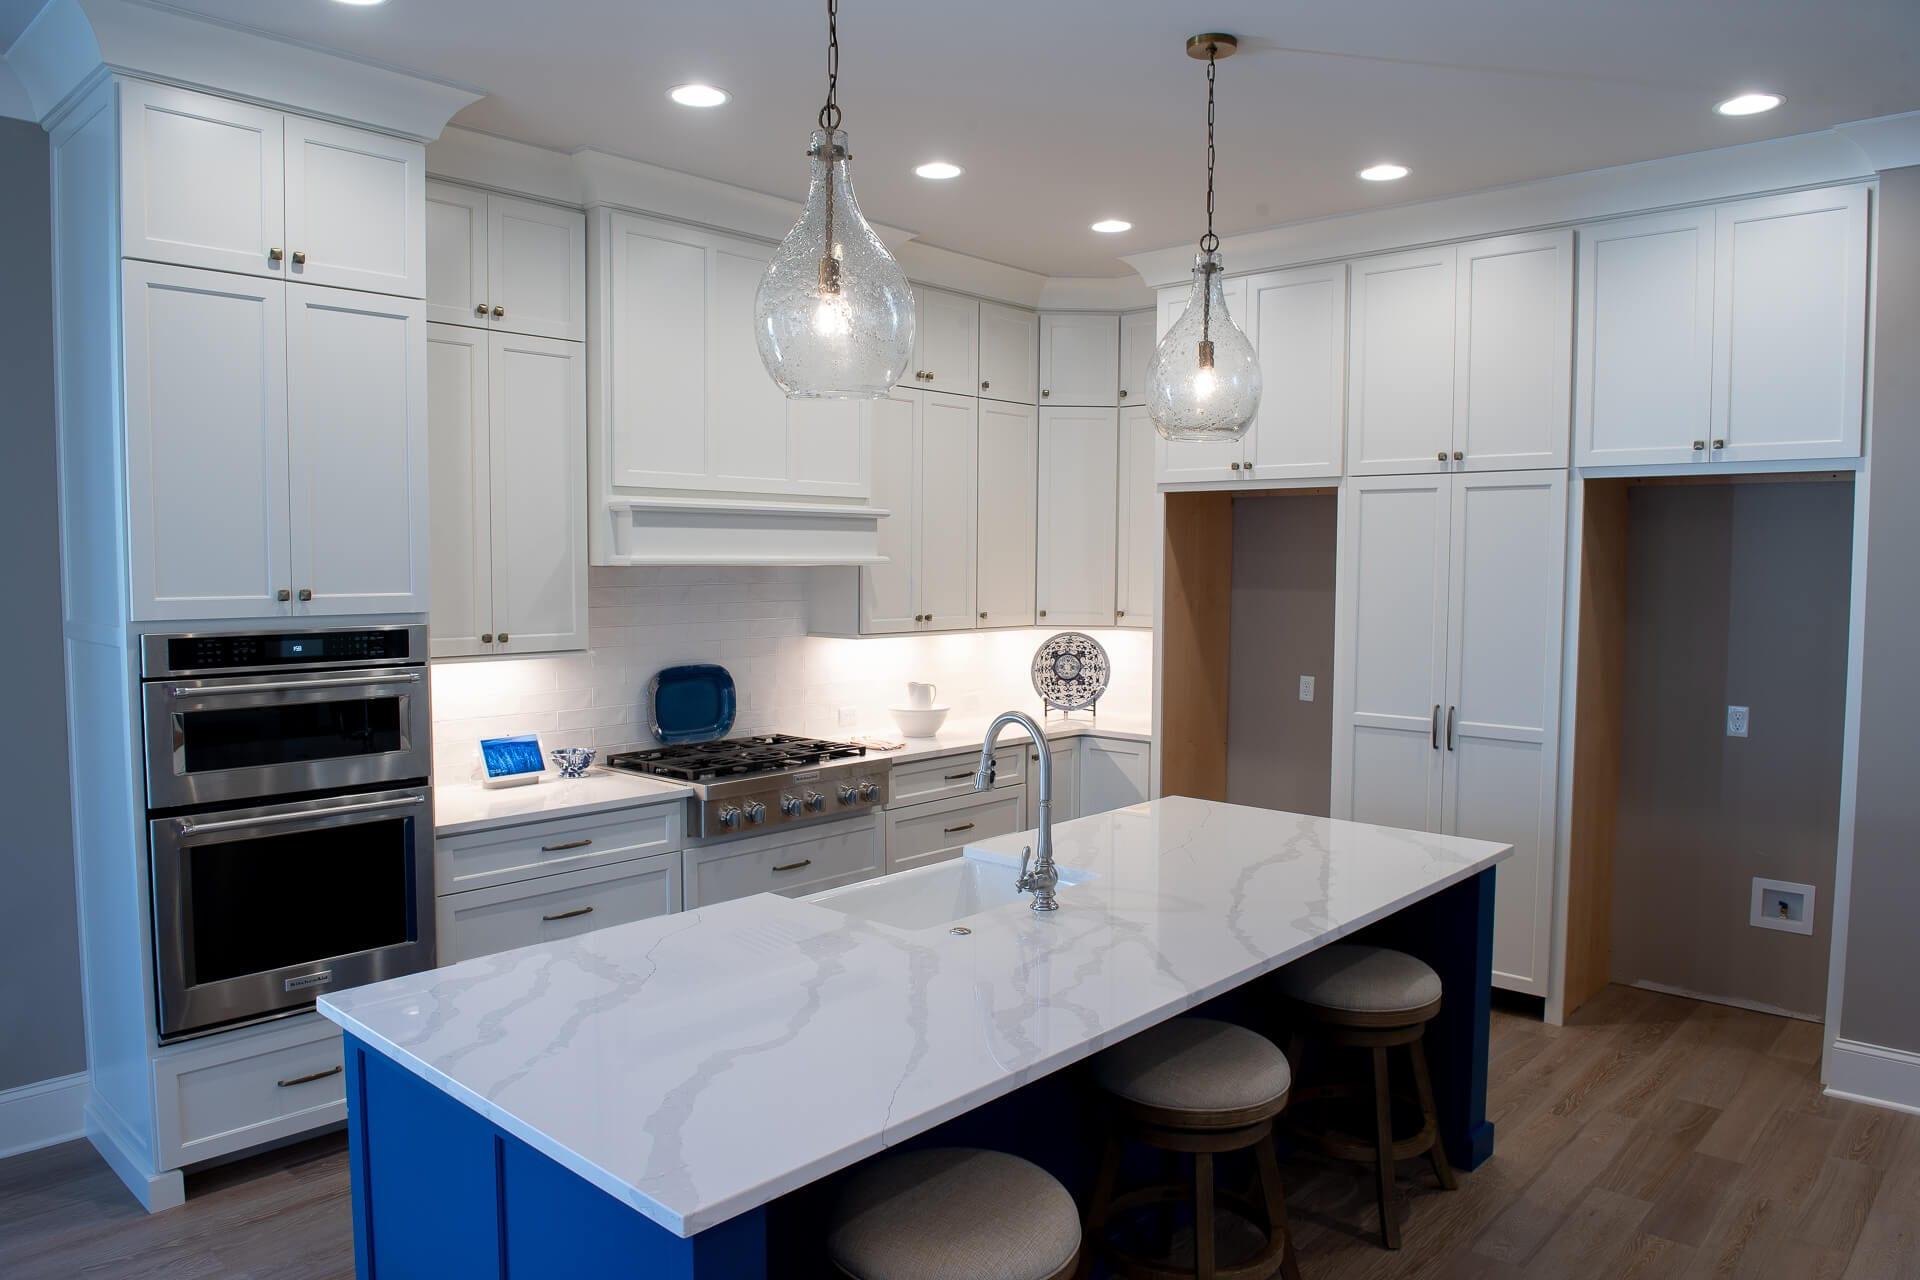 Gallery 9 of a Kitchen Remodel by Magnolia Countertops. A Countertop fabricator of Granite Countertops, Marble Countertops, and Quartz Countertops in Cookeville and Crossville TN.